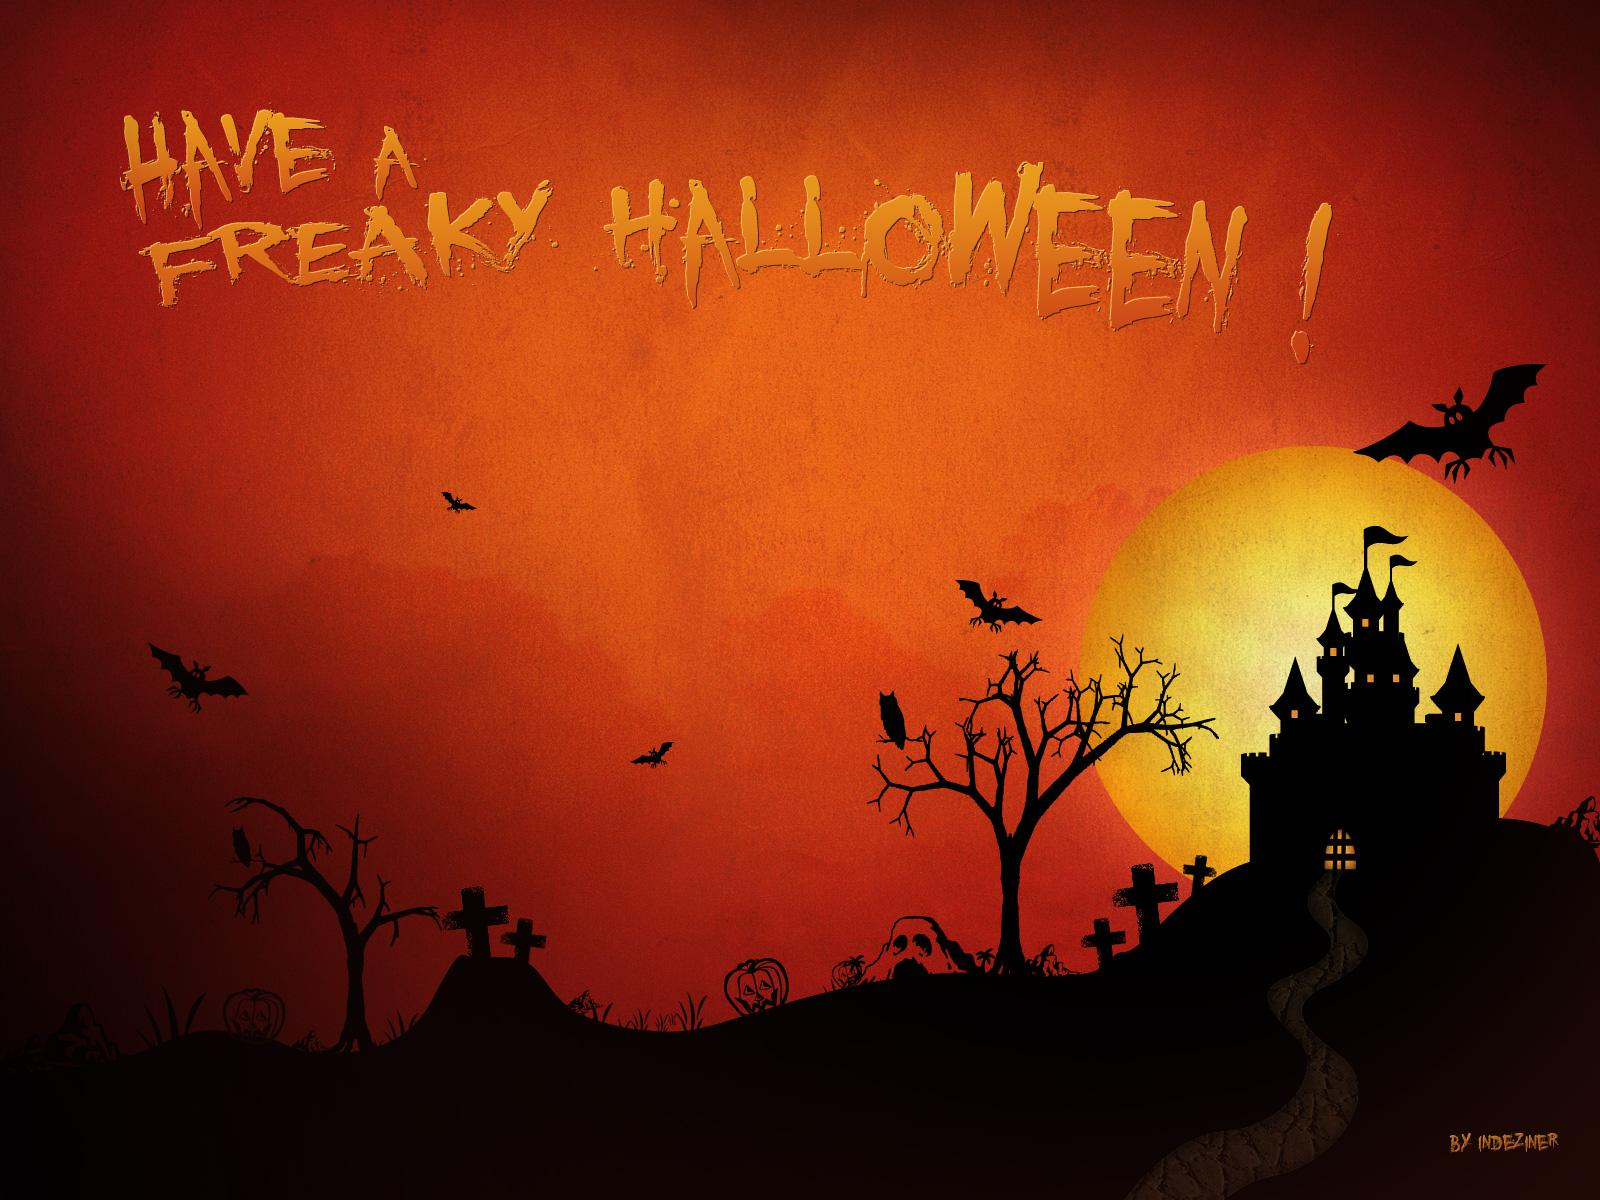 Have a freaky Halloween !